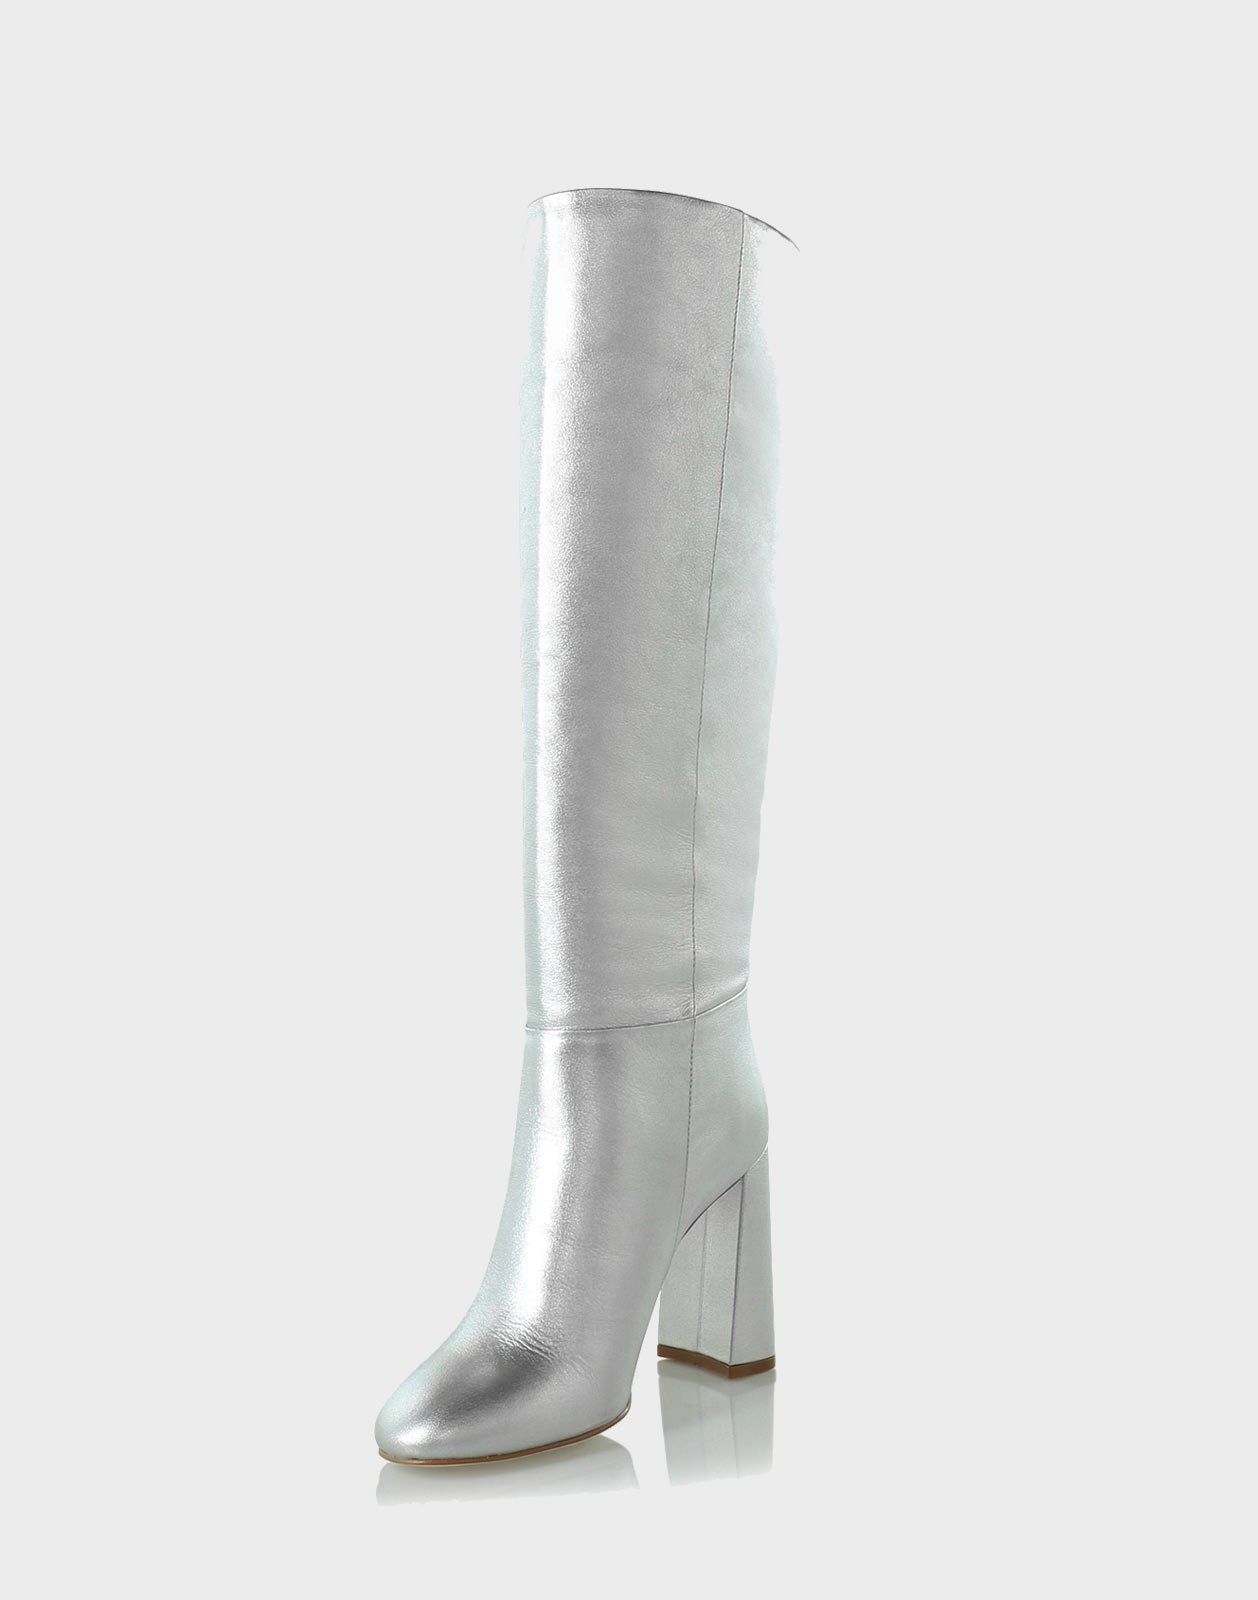 Side view of the Chloe Tall boot with silver metallic leather